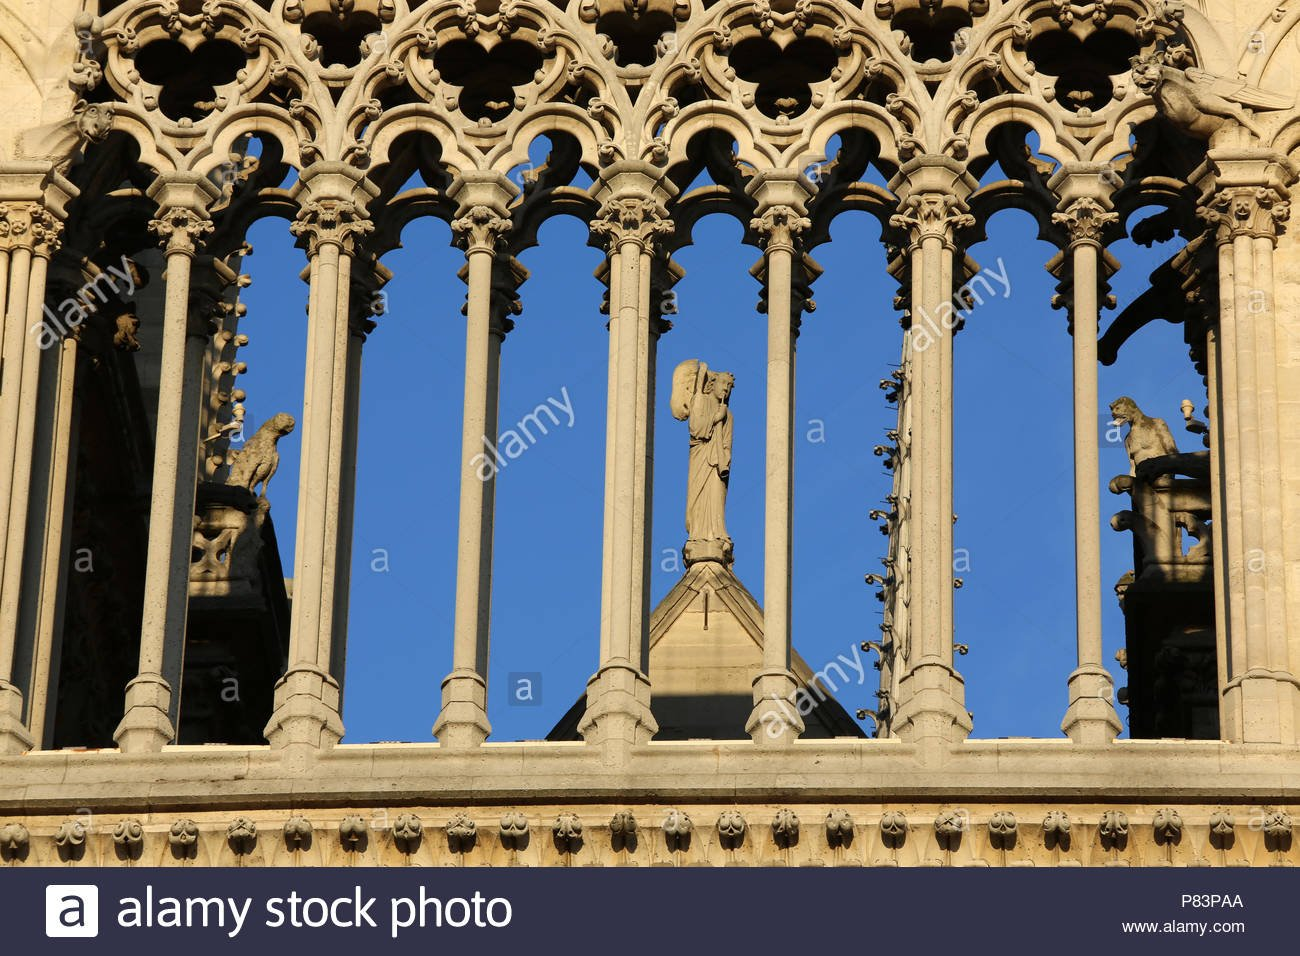 Detail of exterior columns and stone work blue sky background 1300x956